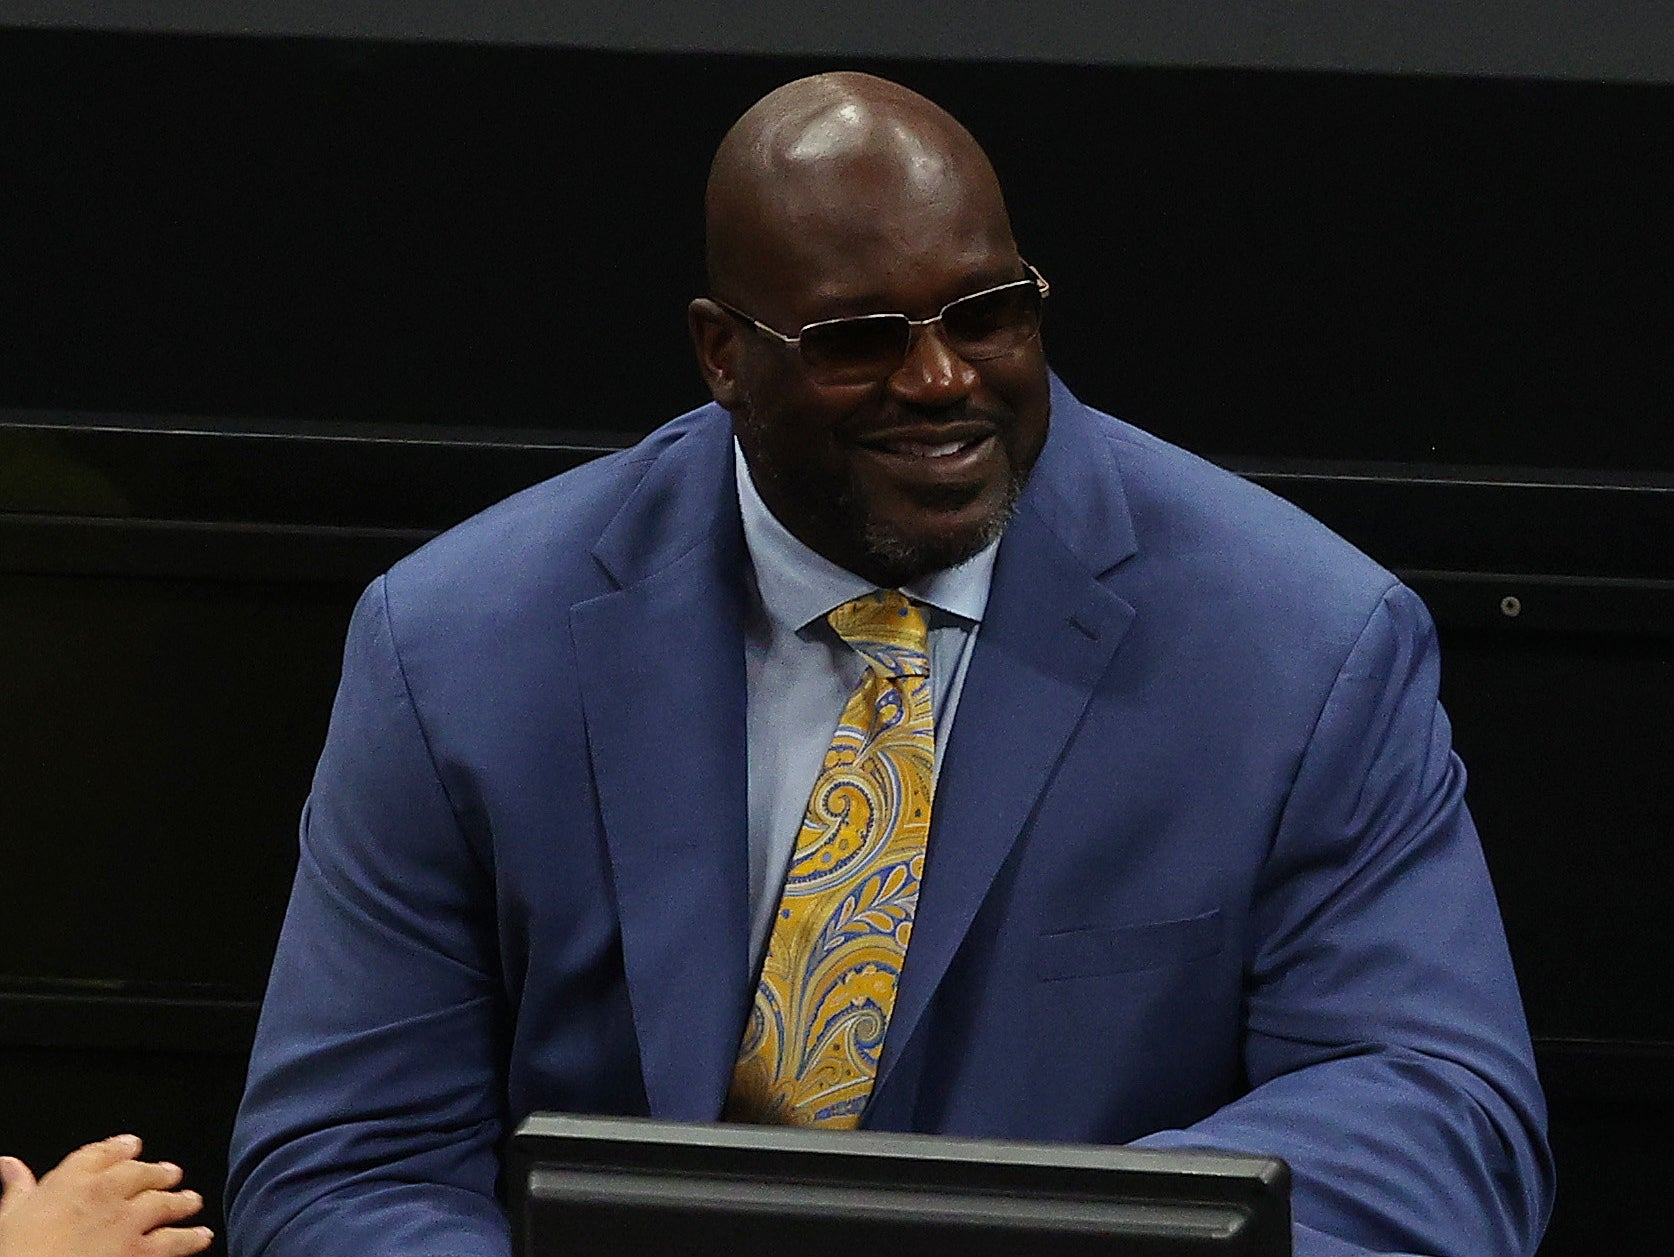 Shaq wearing a suit with sunglasses on smiling